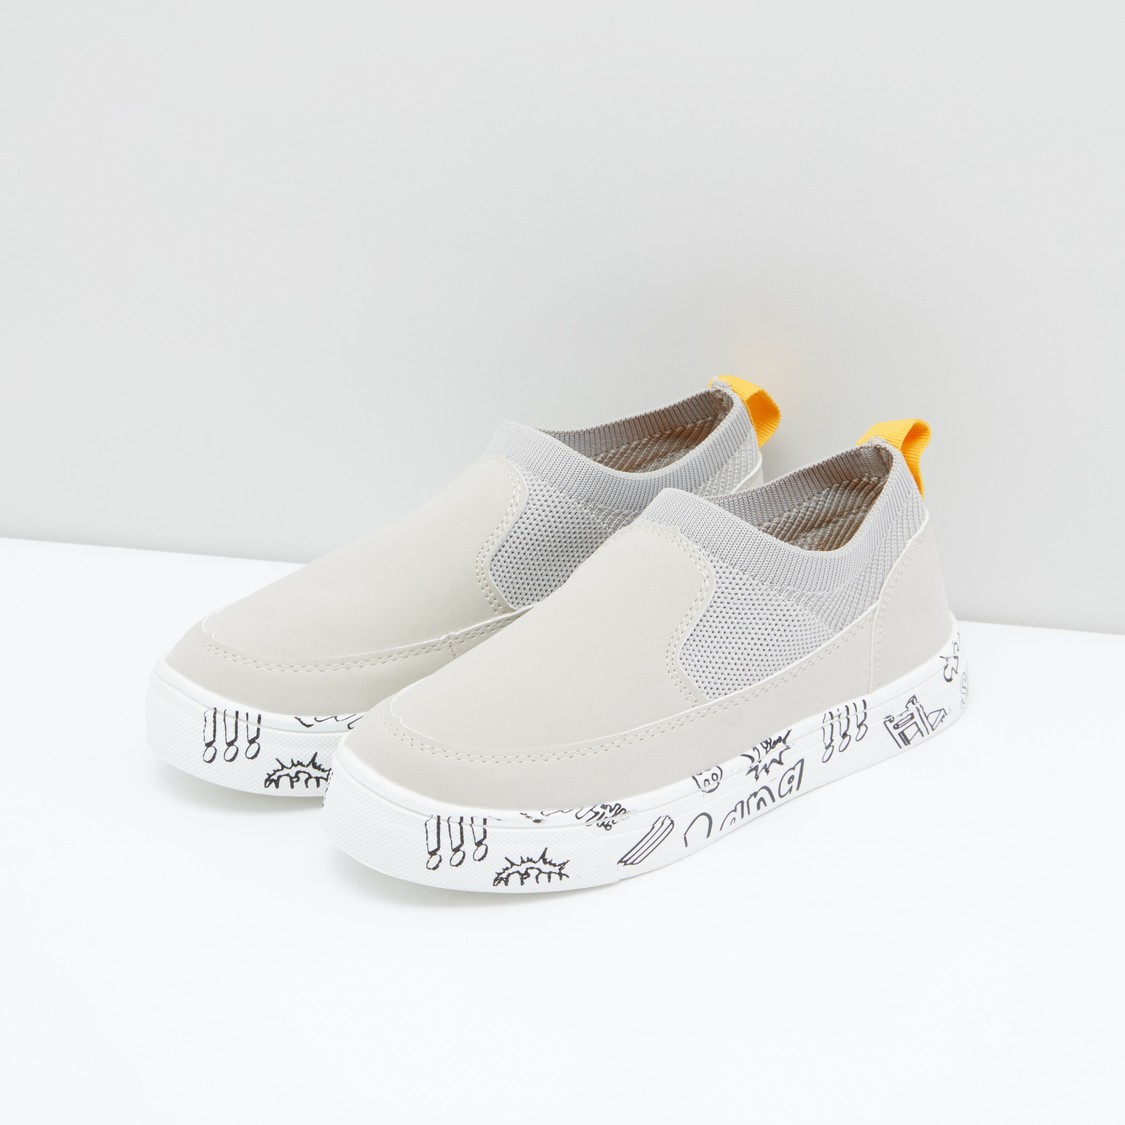 Textured Shoes with Printed Sole